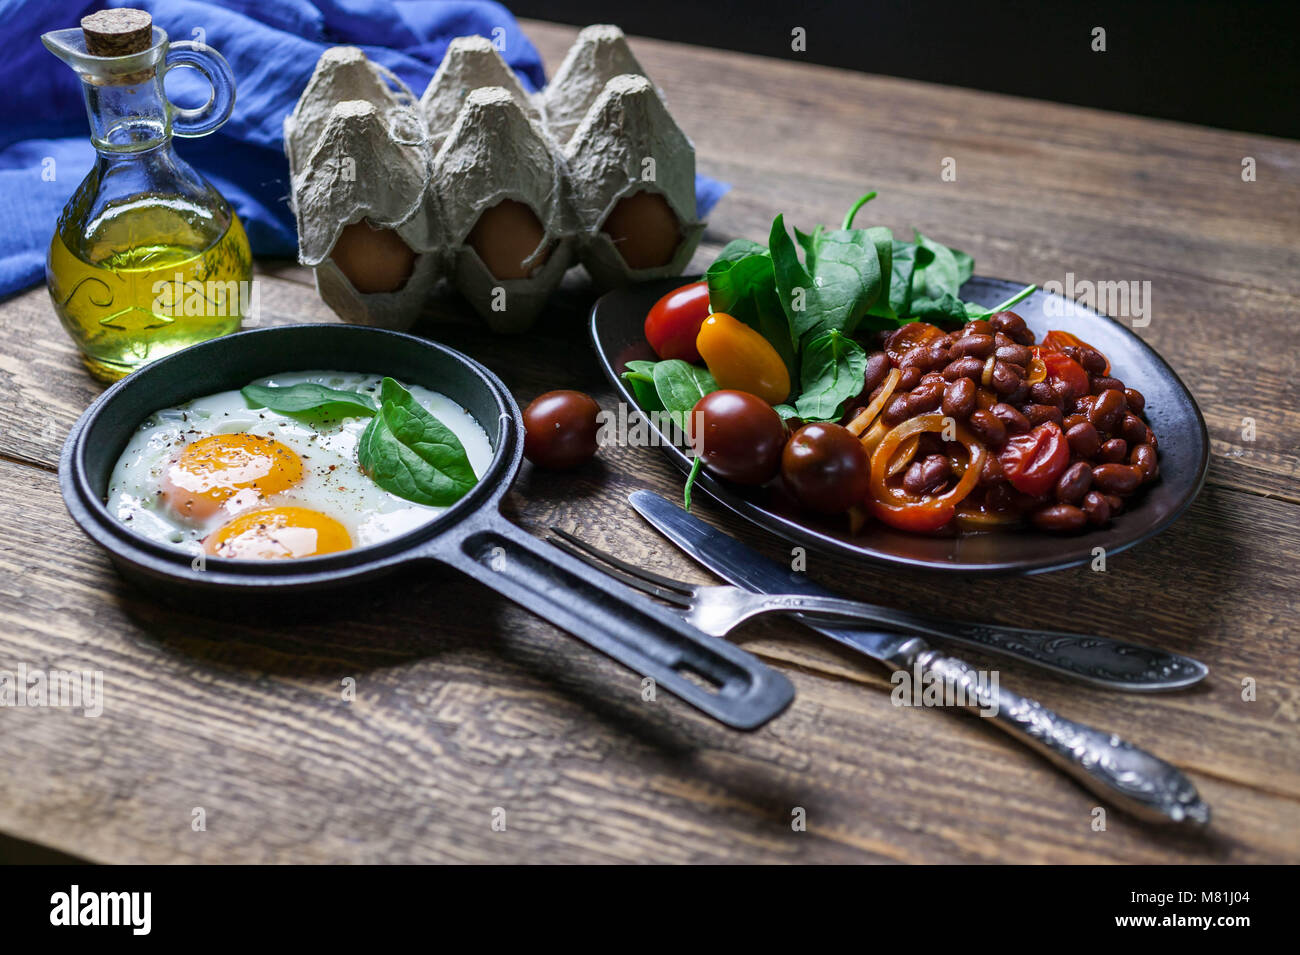 The pan fried eggs, haricot stewed in tomato sauce and fresh spinach. Concept of a healthy breakfast. Stock Photo